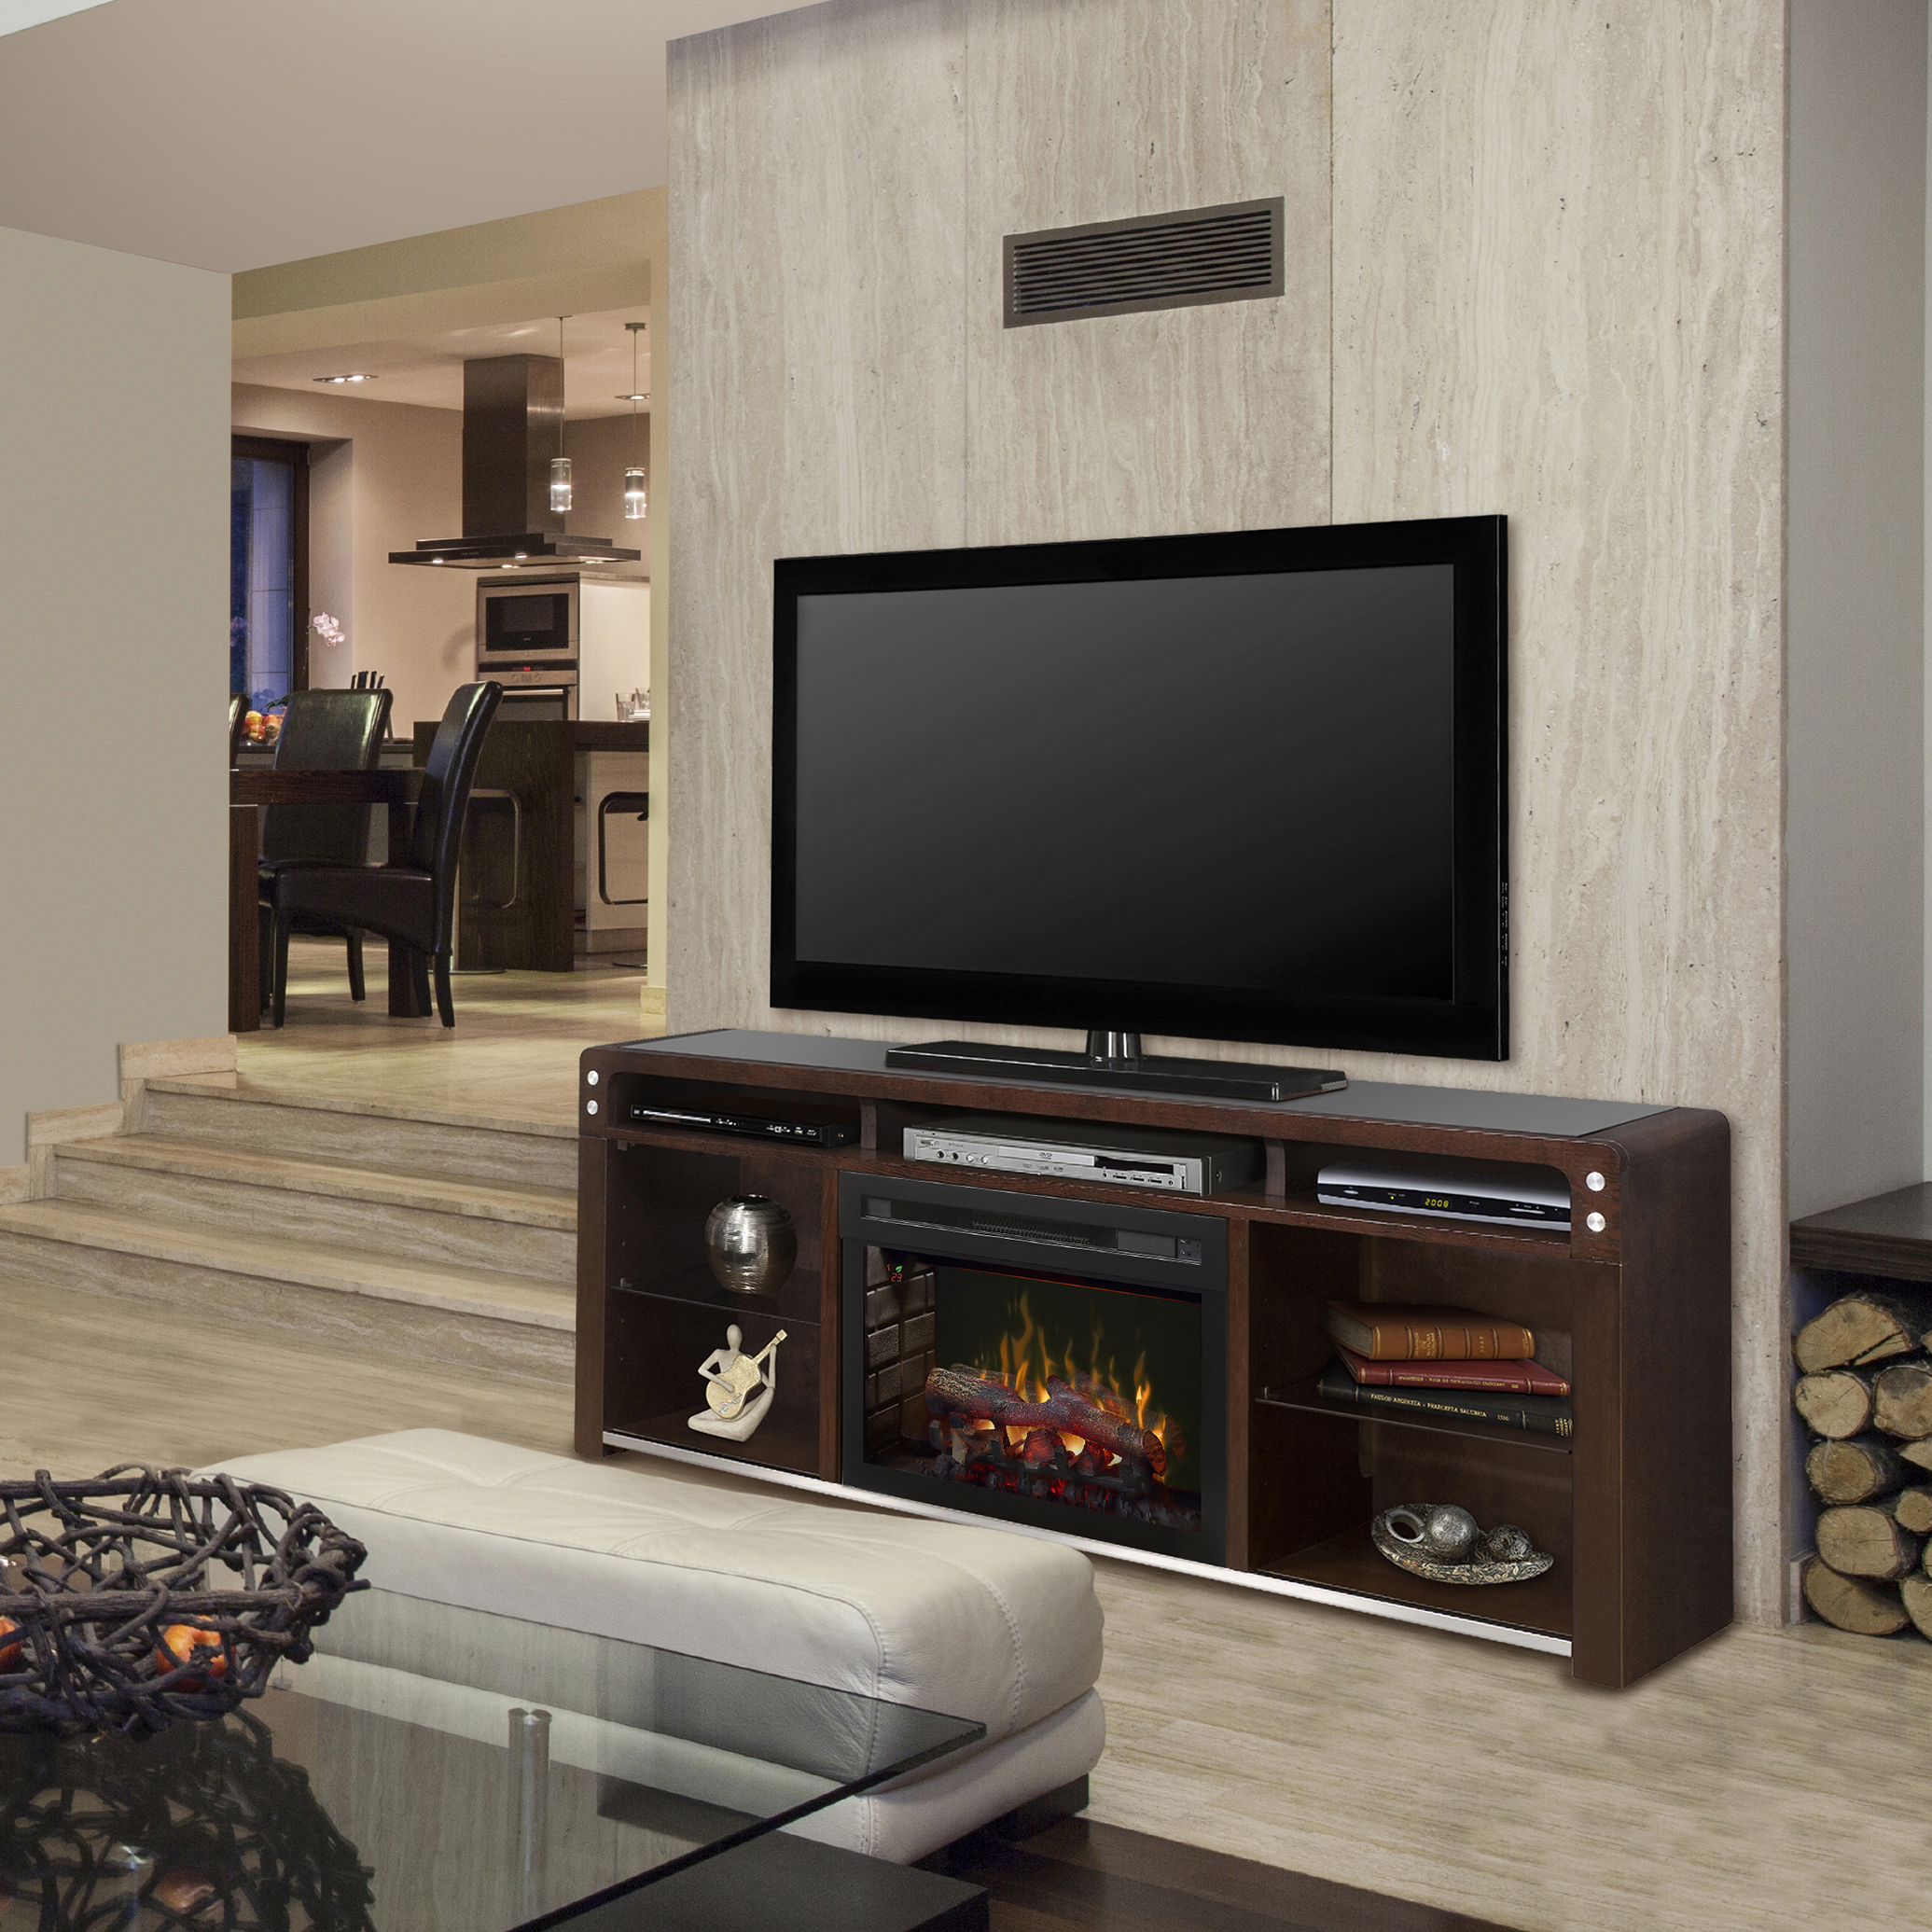 Galloway electric fireplace media console by DIMPLEX